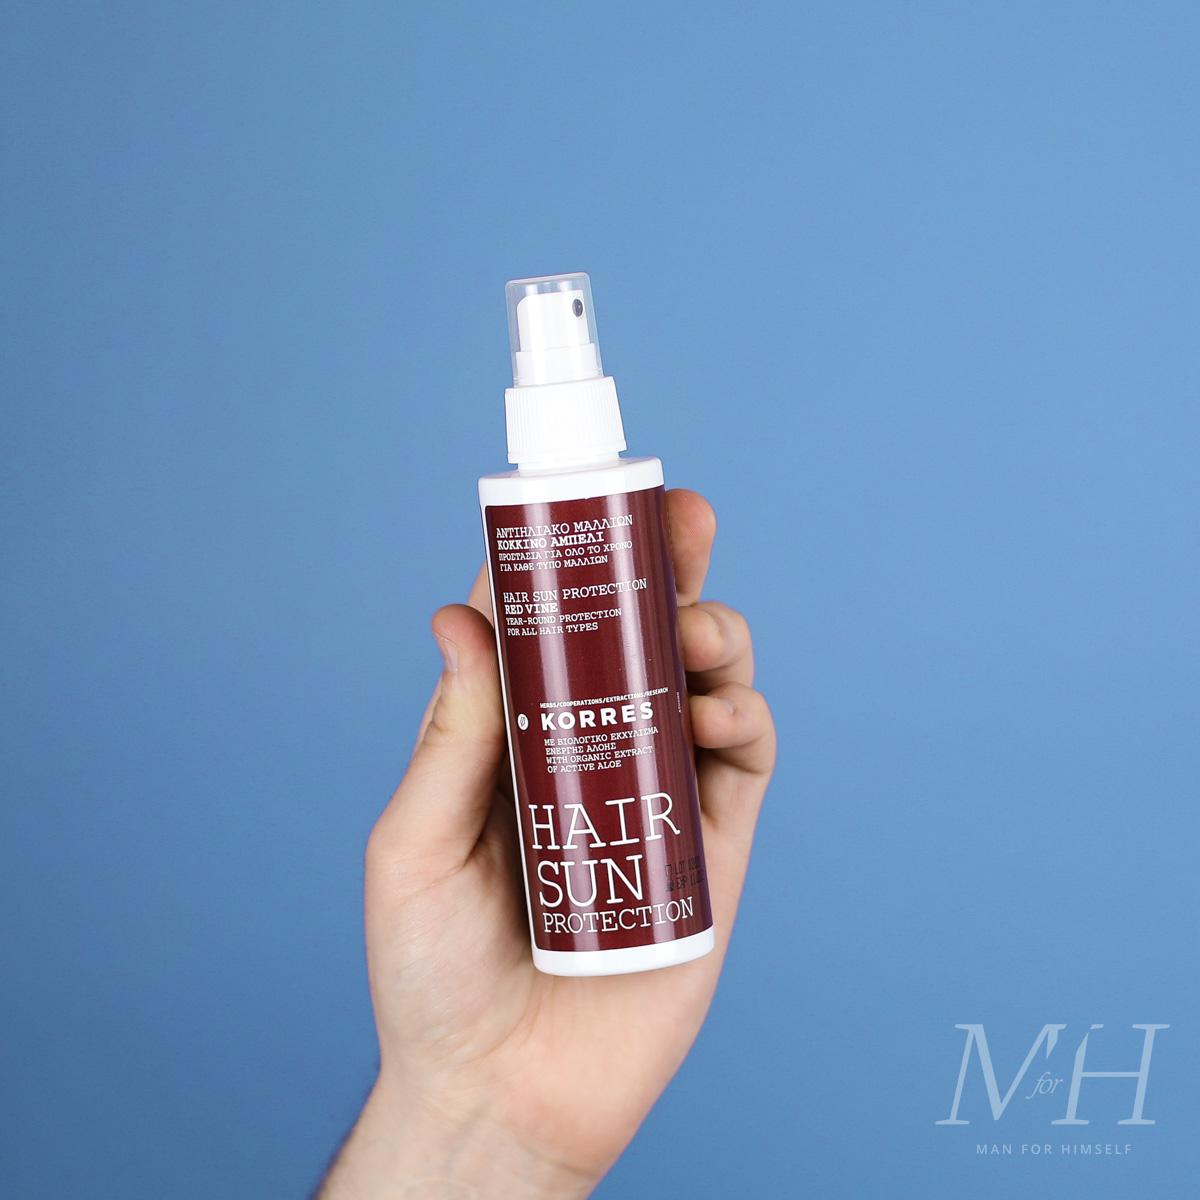 korres-hair-sun-protection-product-review-man-for-himself